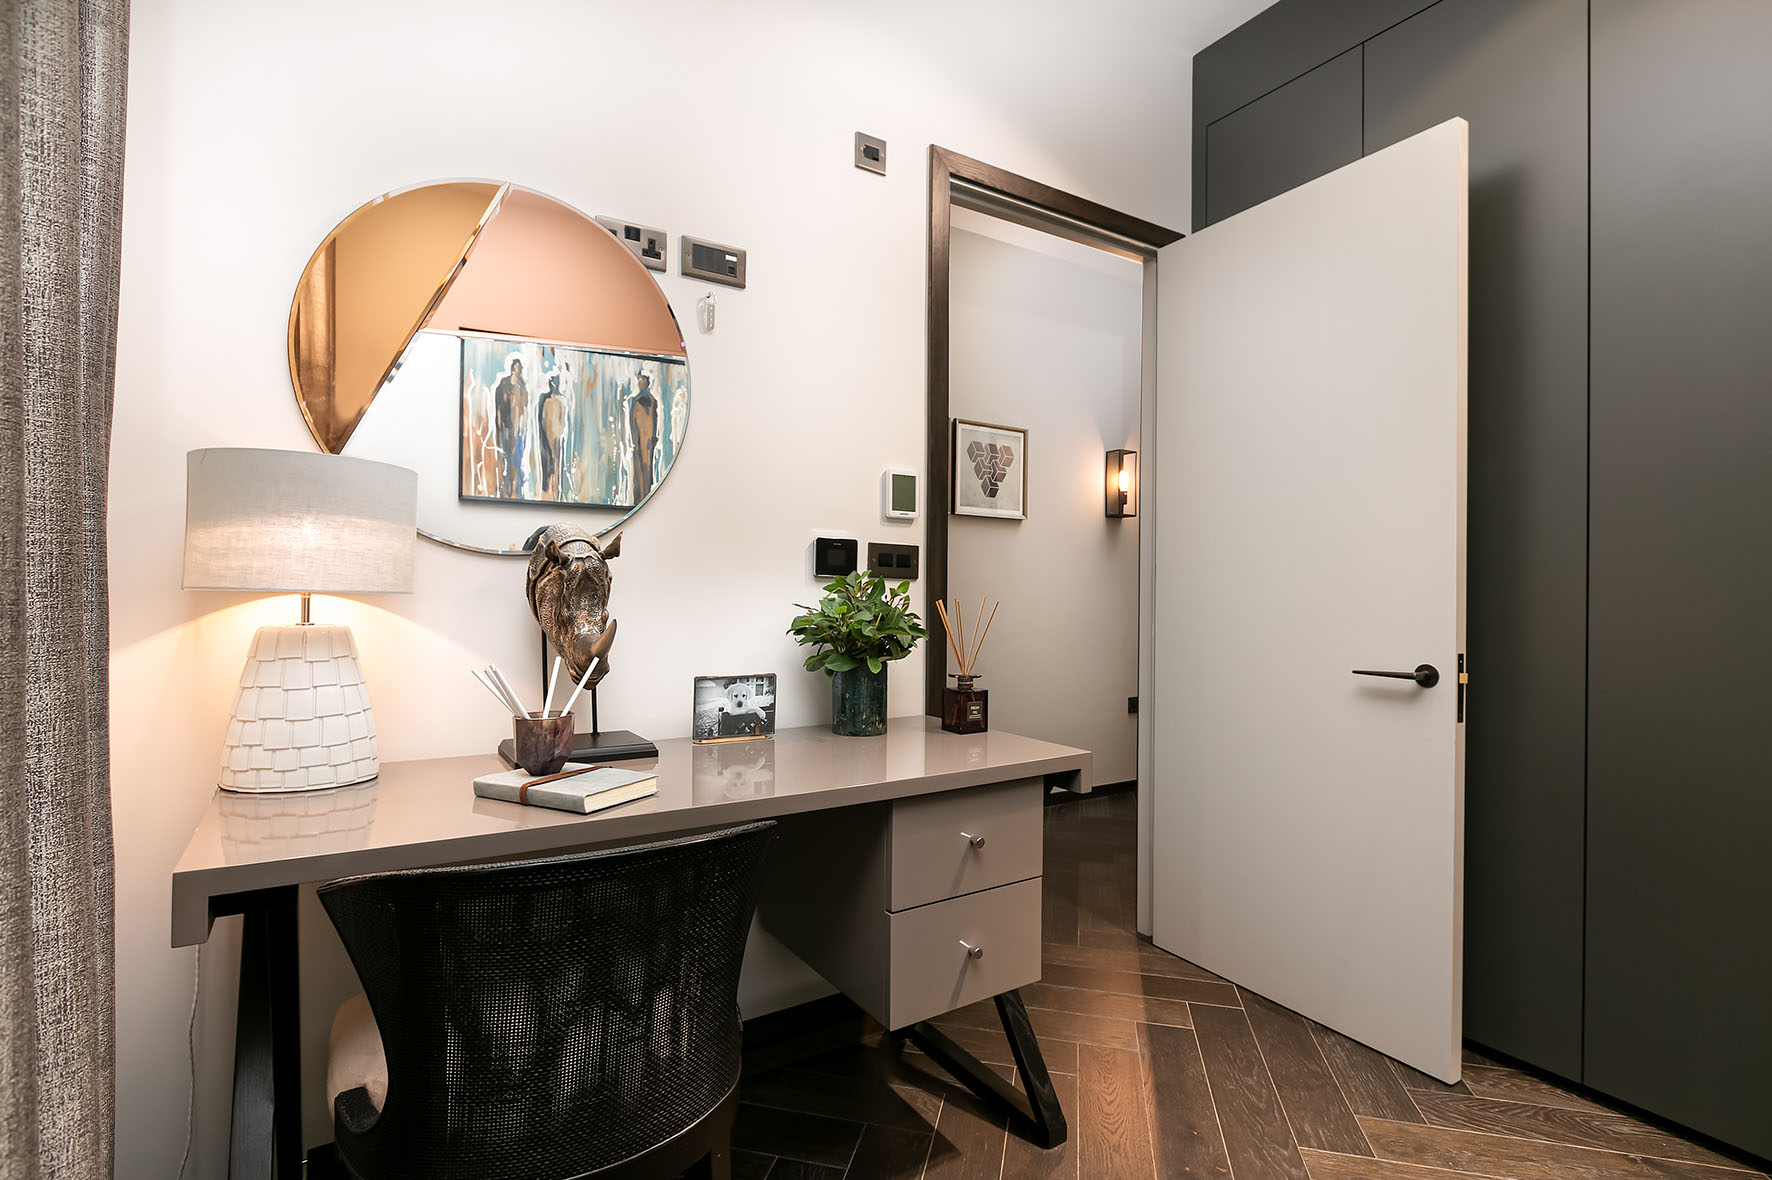 Lovelydays luxury service apartment rental - London - Soho - Berwick Street I - Lovelysuite - 3 bedrooms - 3 bathrooms - Working desk - c417edd6cf32 - Lovelydays